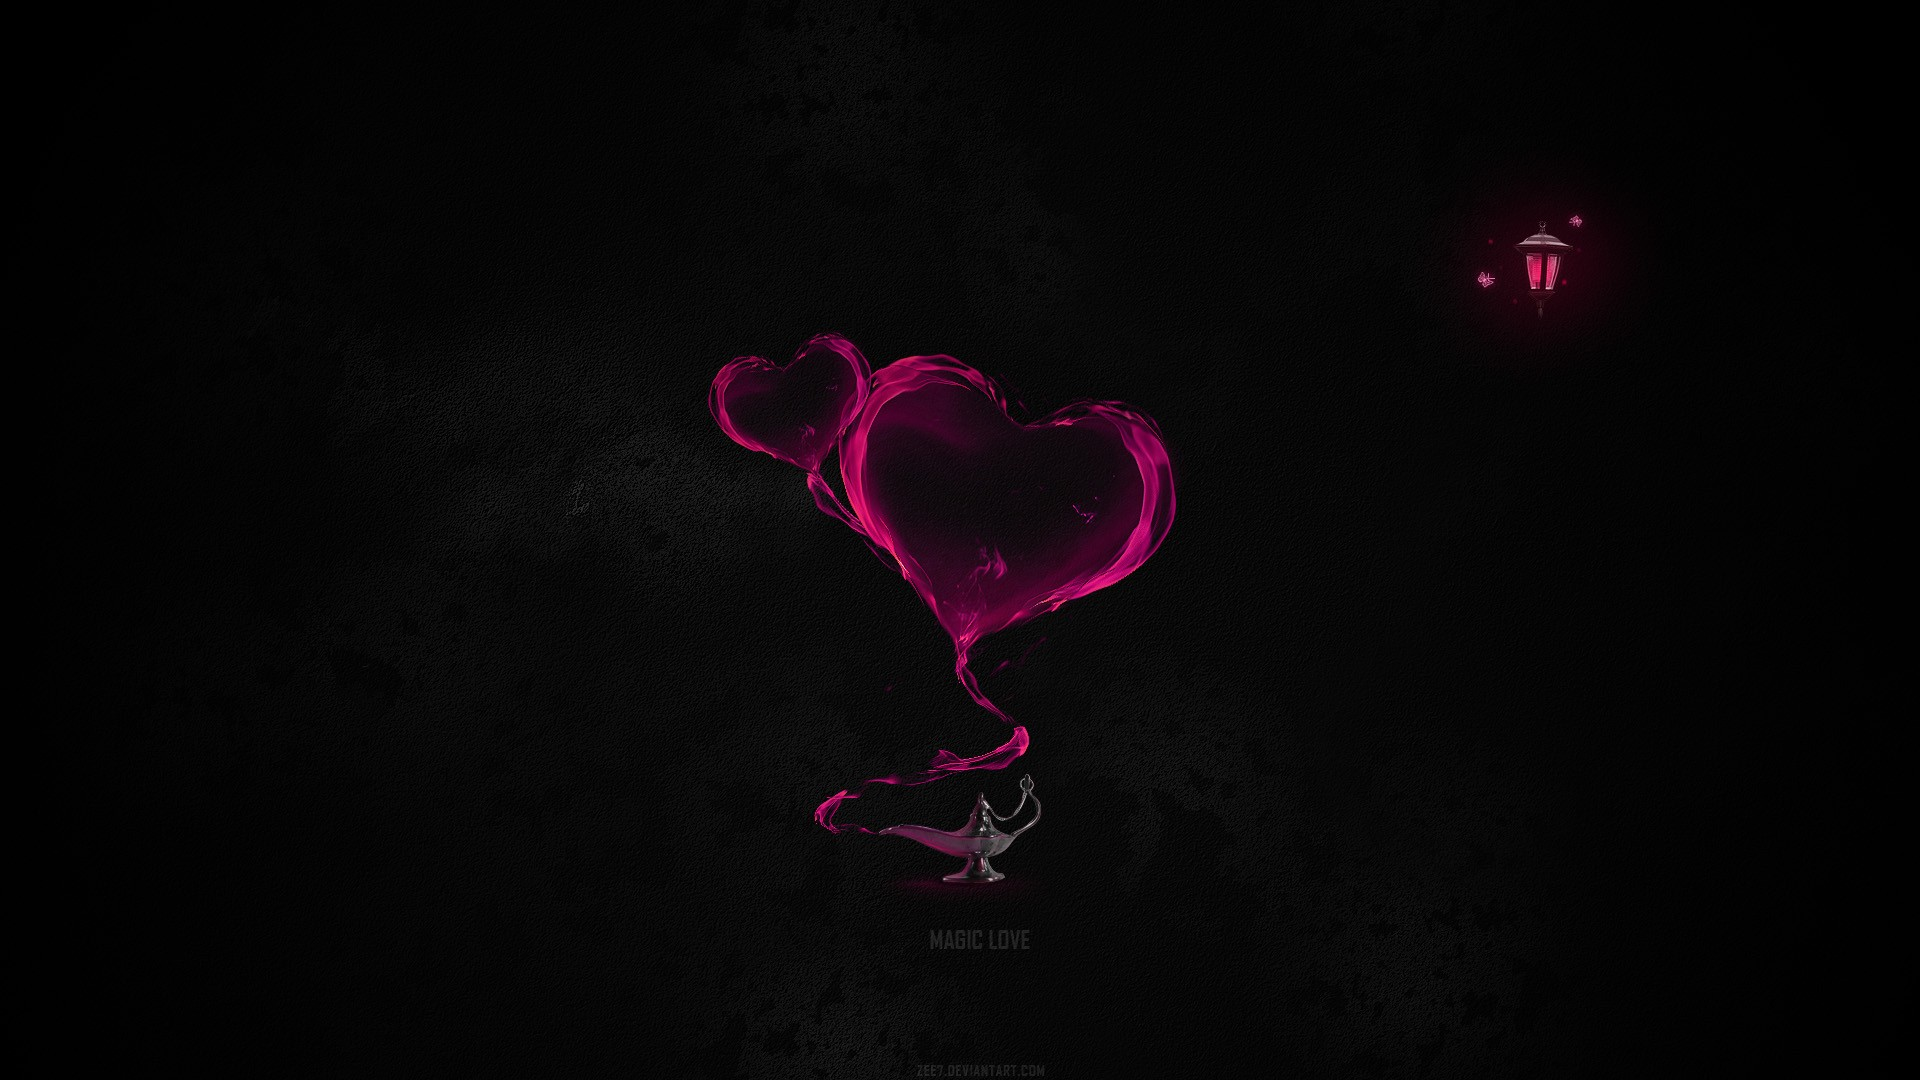 Heart Stock Photos  Download 678453 Images